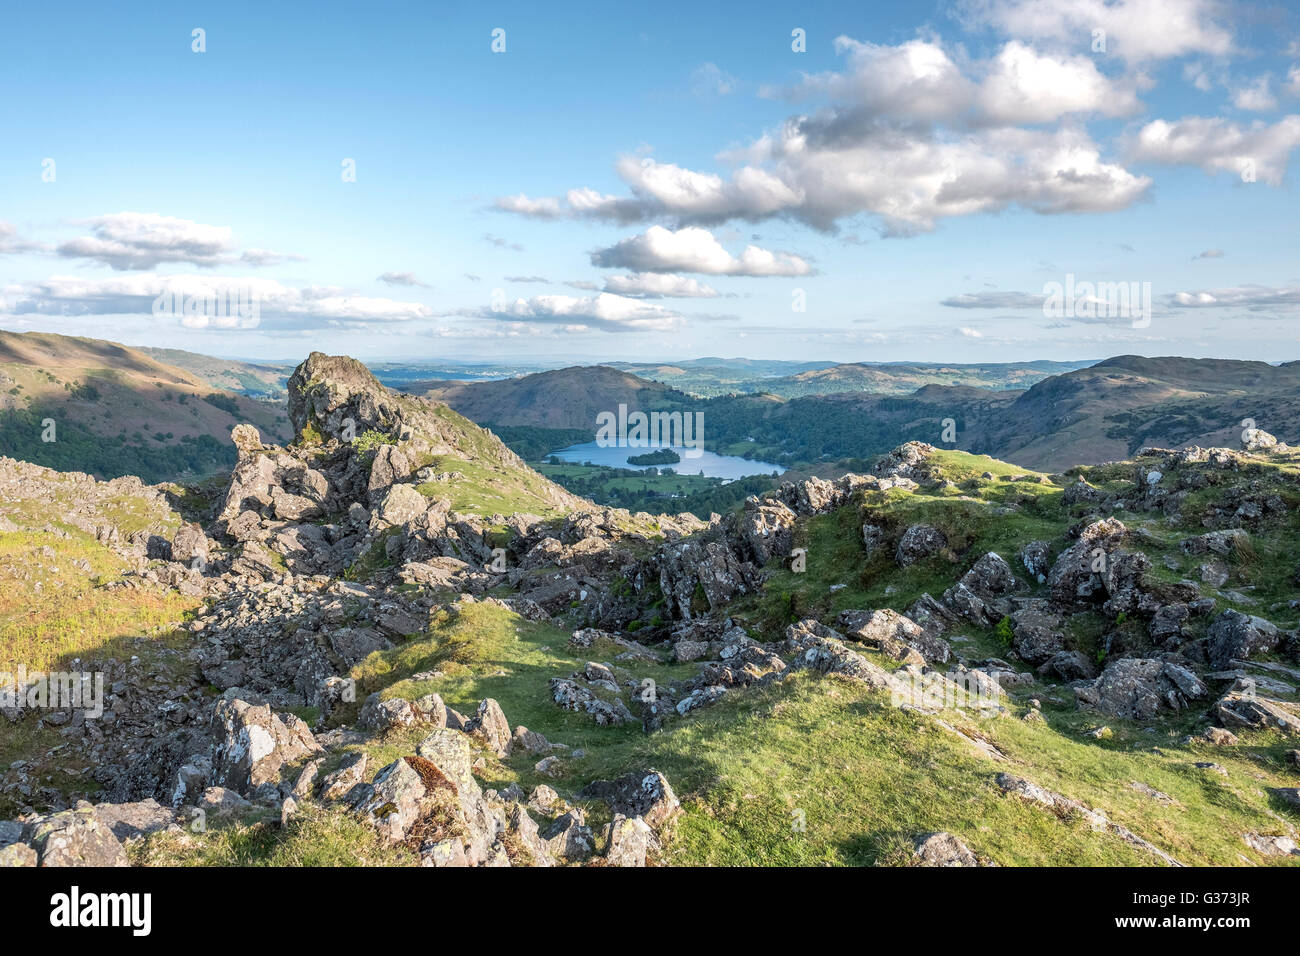 View from Helm Crag, looking towards Grasmere Village, in the English Lake District, Cumbria - Stock Image